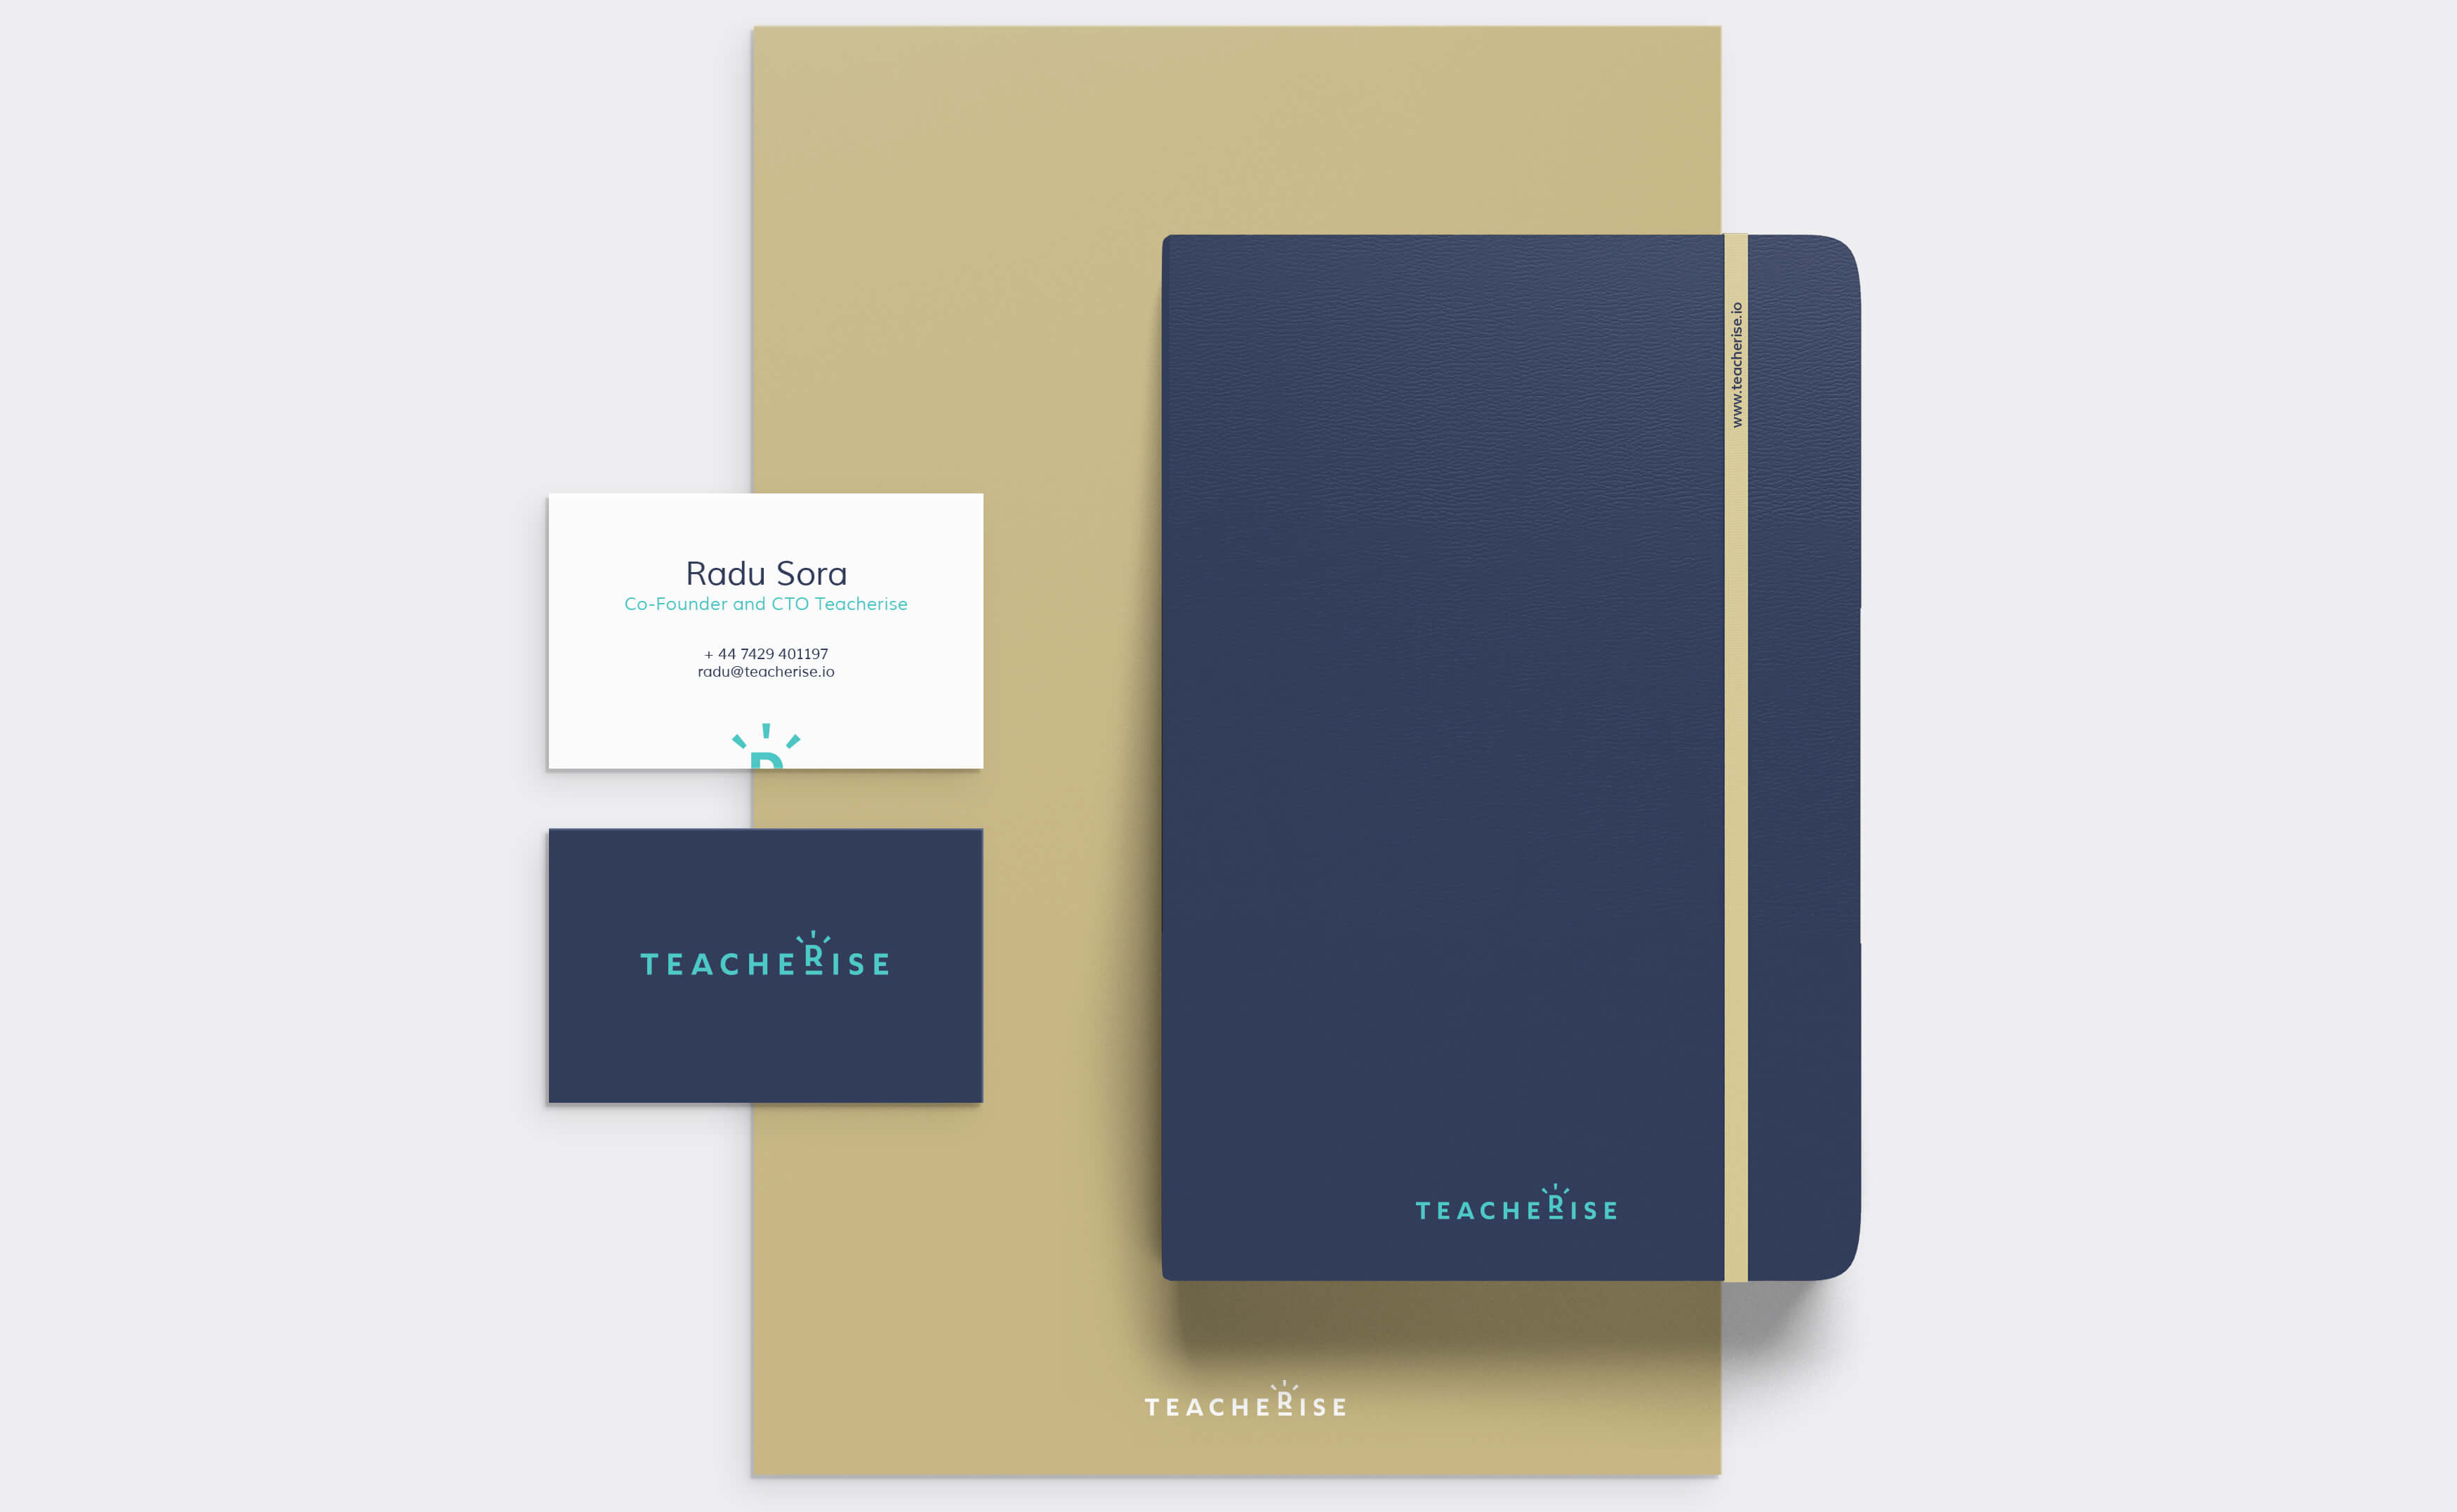 Teacherise stationery